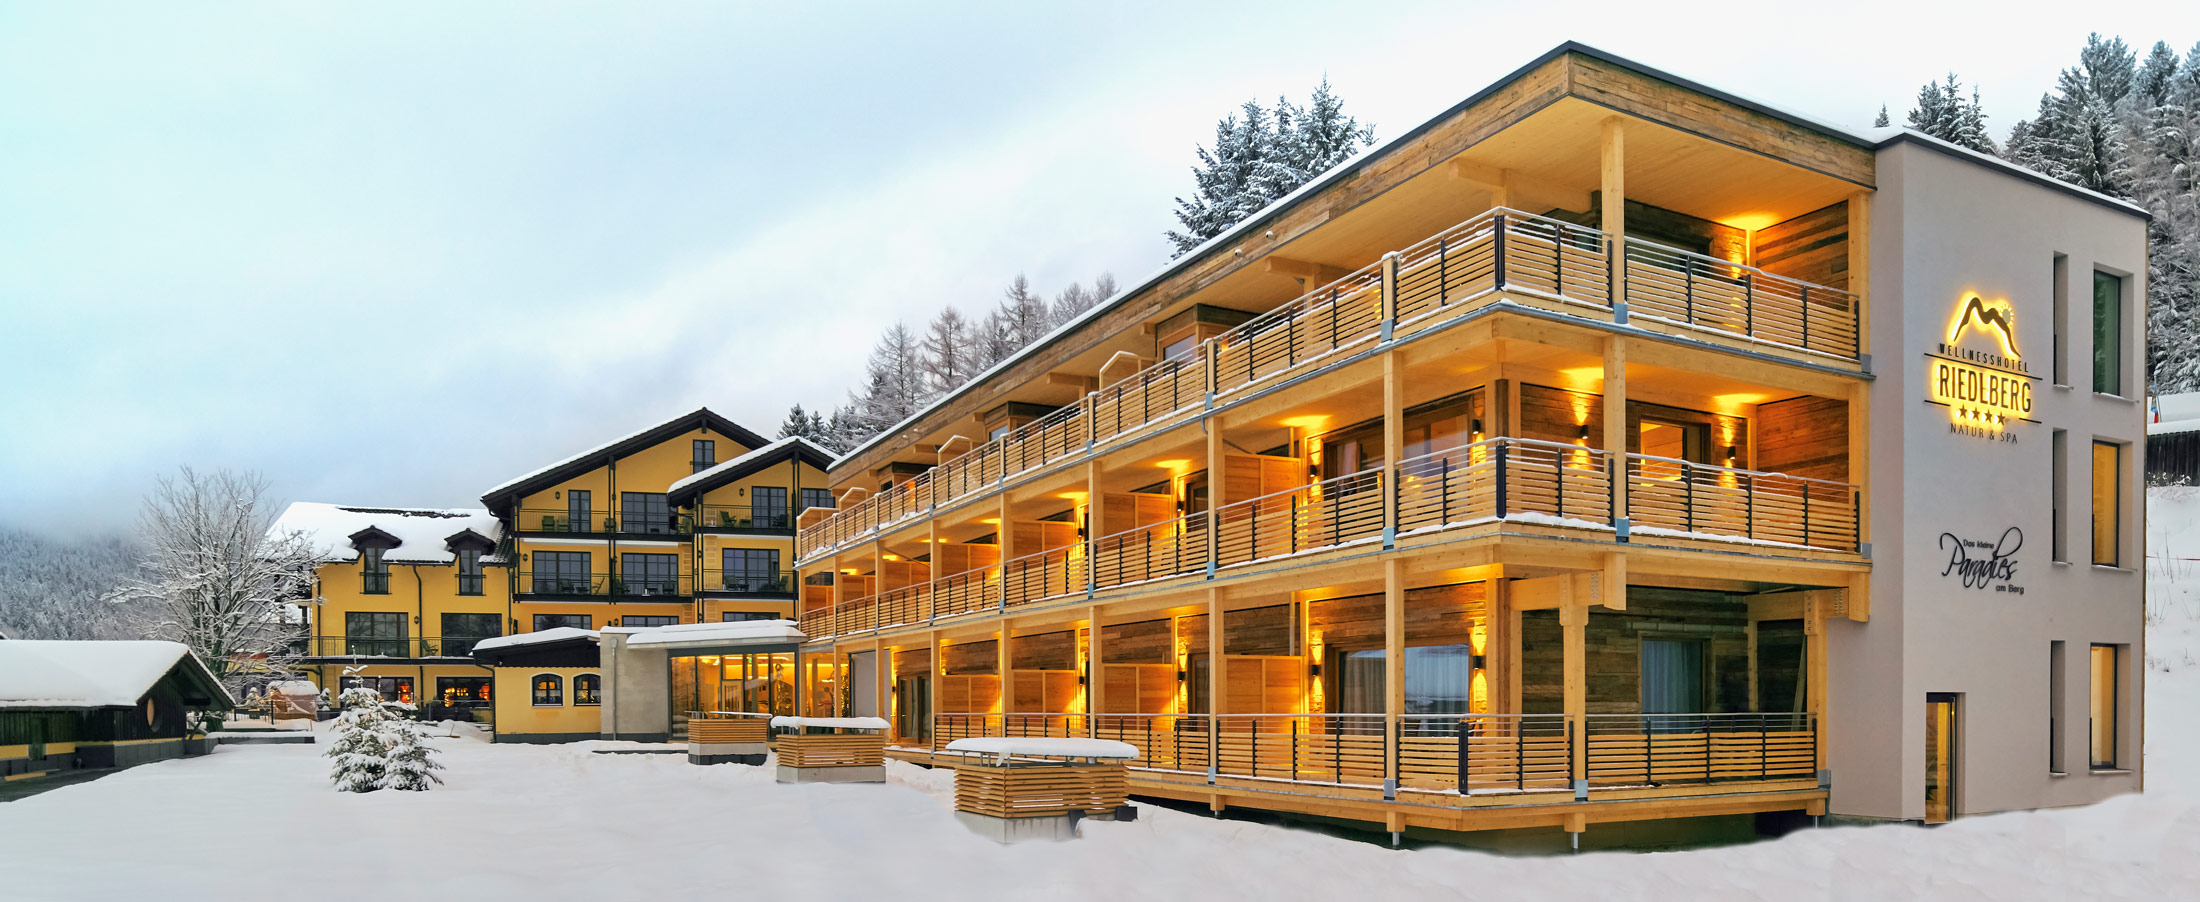 4-Sterne Superior Wellness & SPA Hotel Riedlberg in Bayern